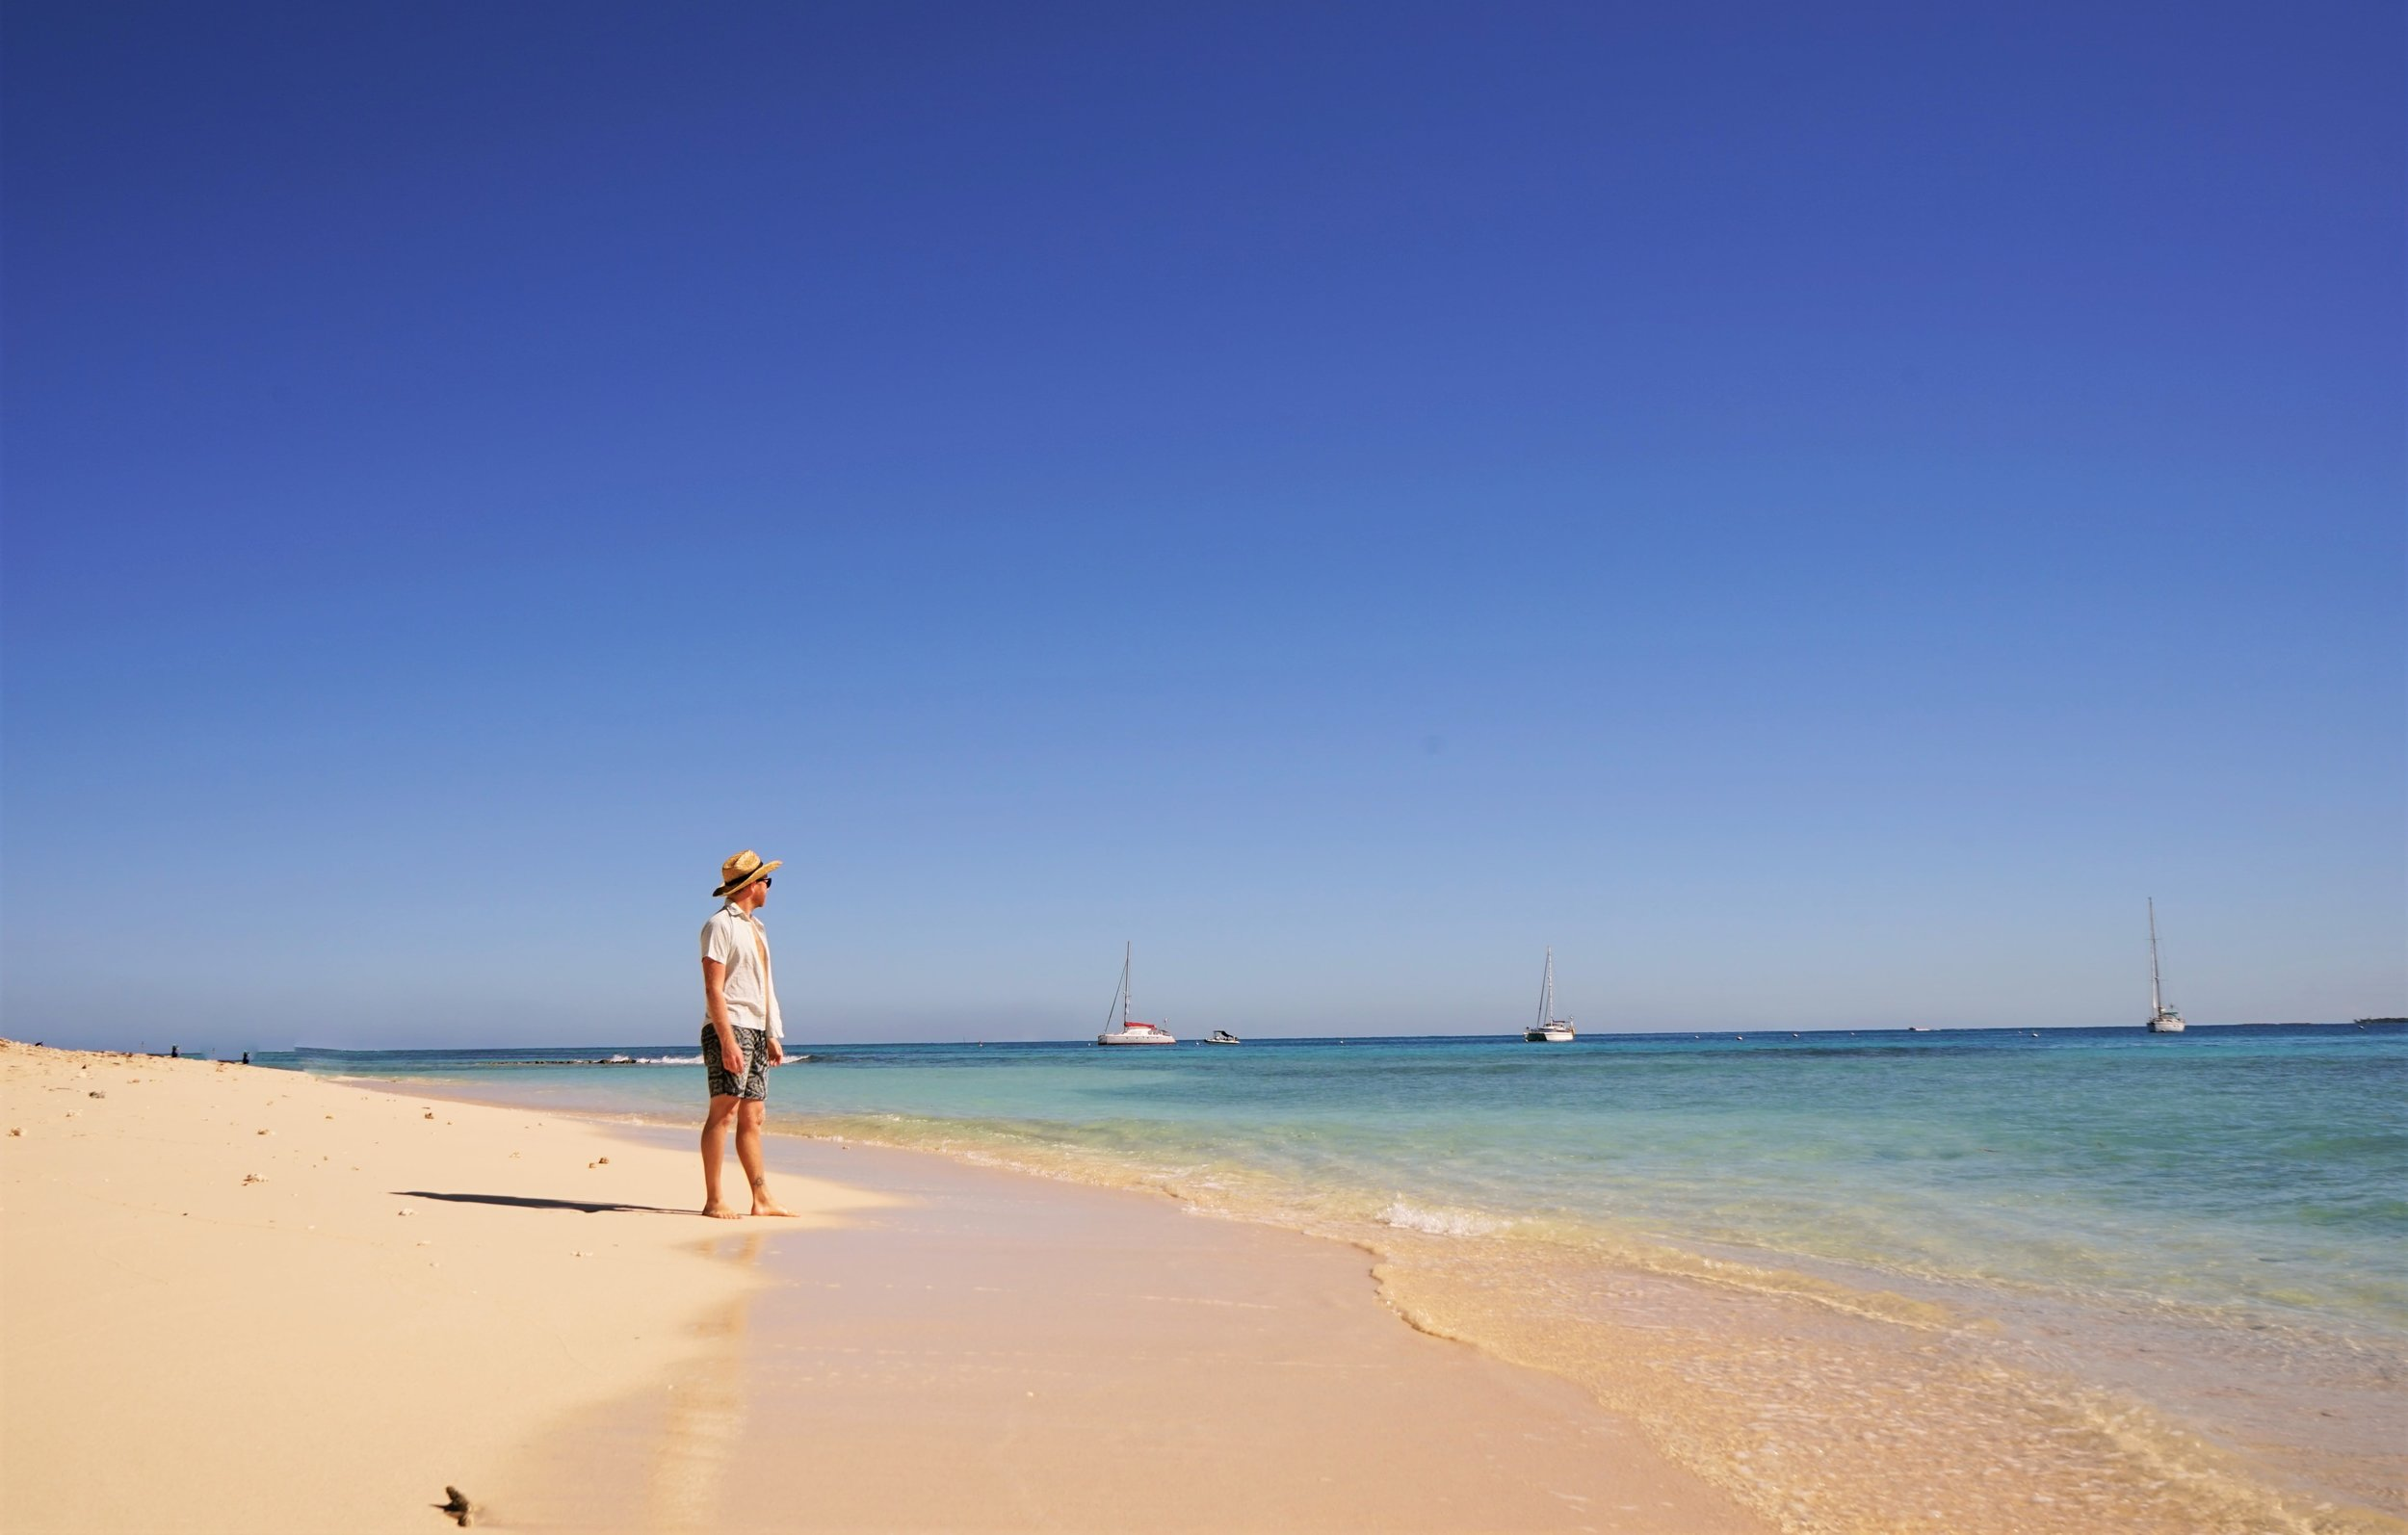 Relaxing on the beautiful sand beaches is one of the best things to do in New Caledonia.